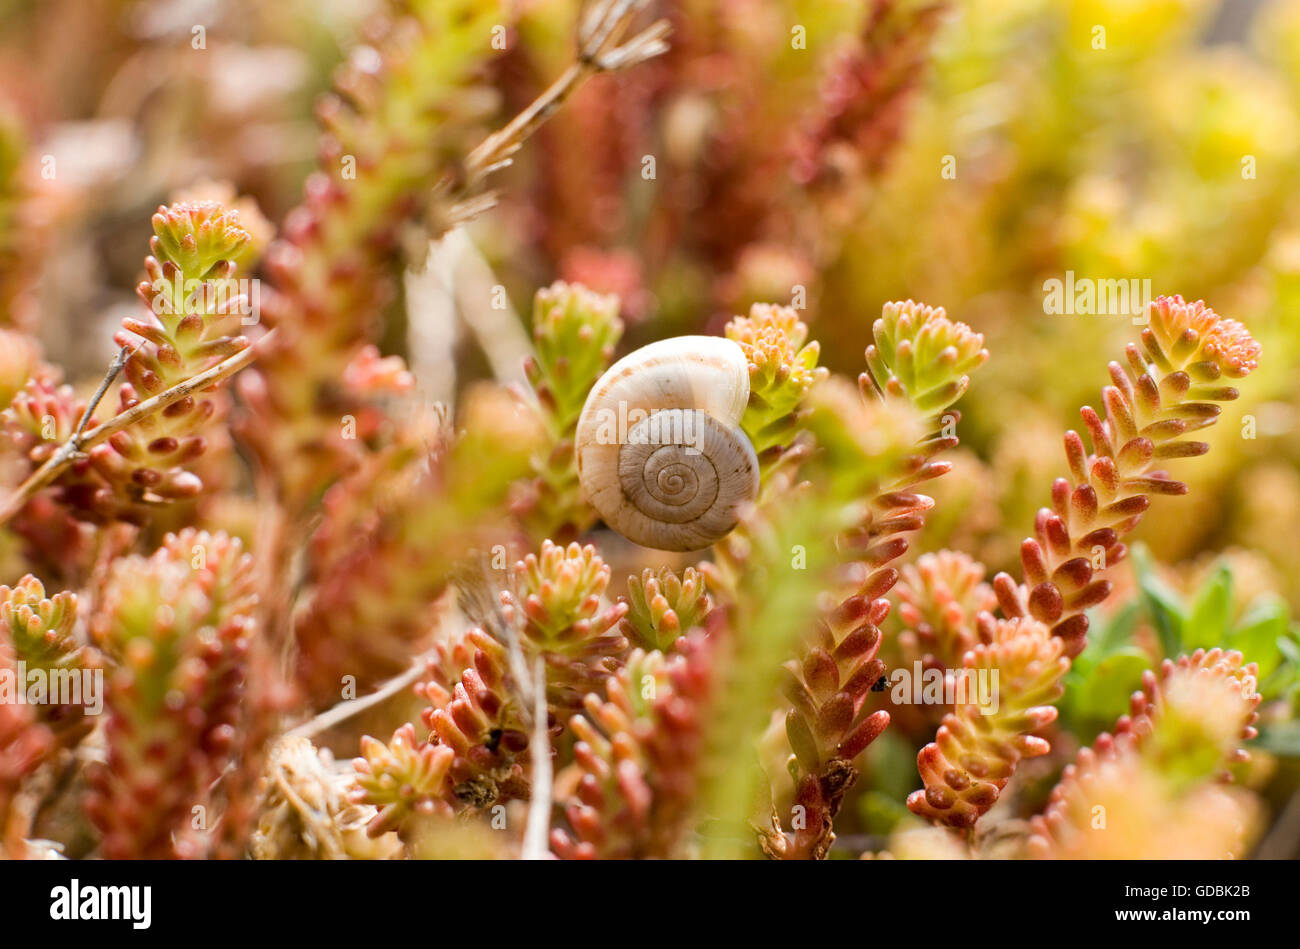 A snail rests in a purslane field. - Stock Image